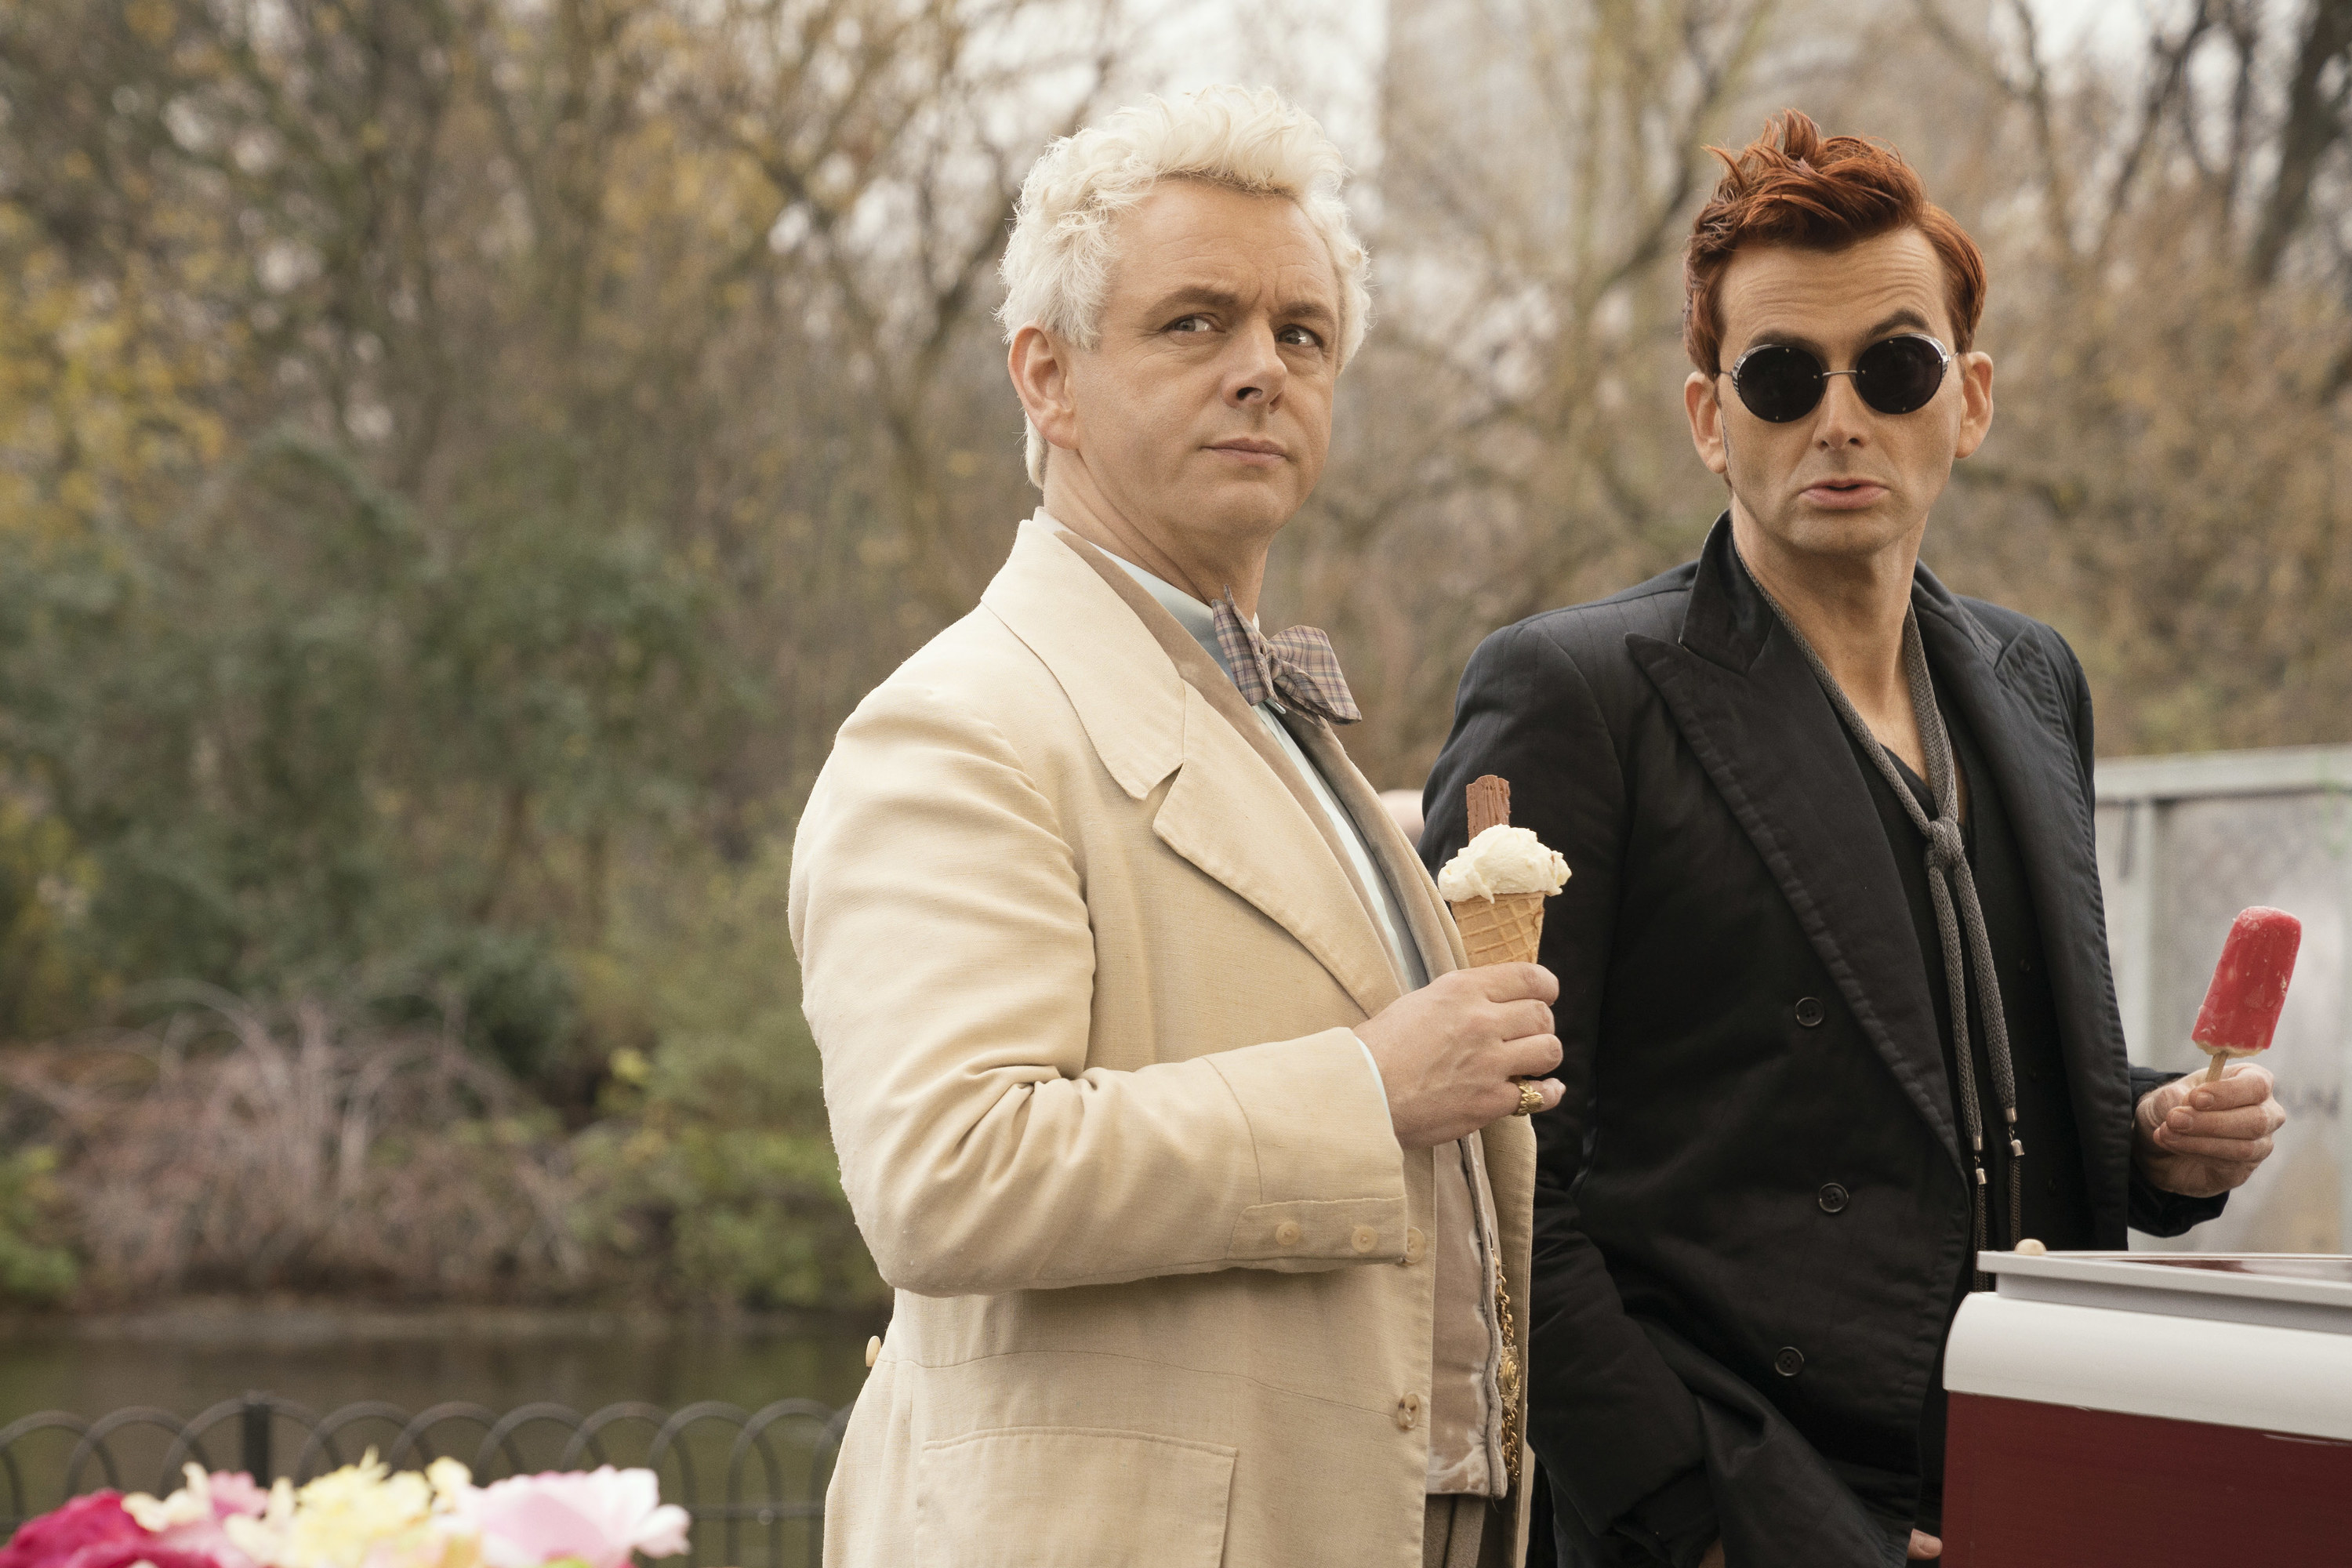 David Tennant and Michael Sheen as Crowly and Aziraphale in Good Omens